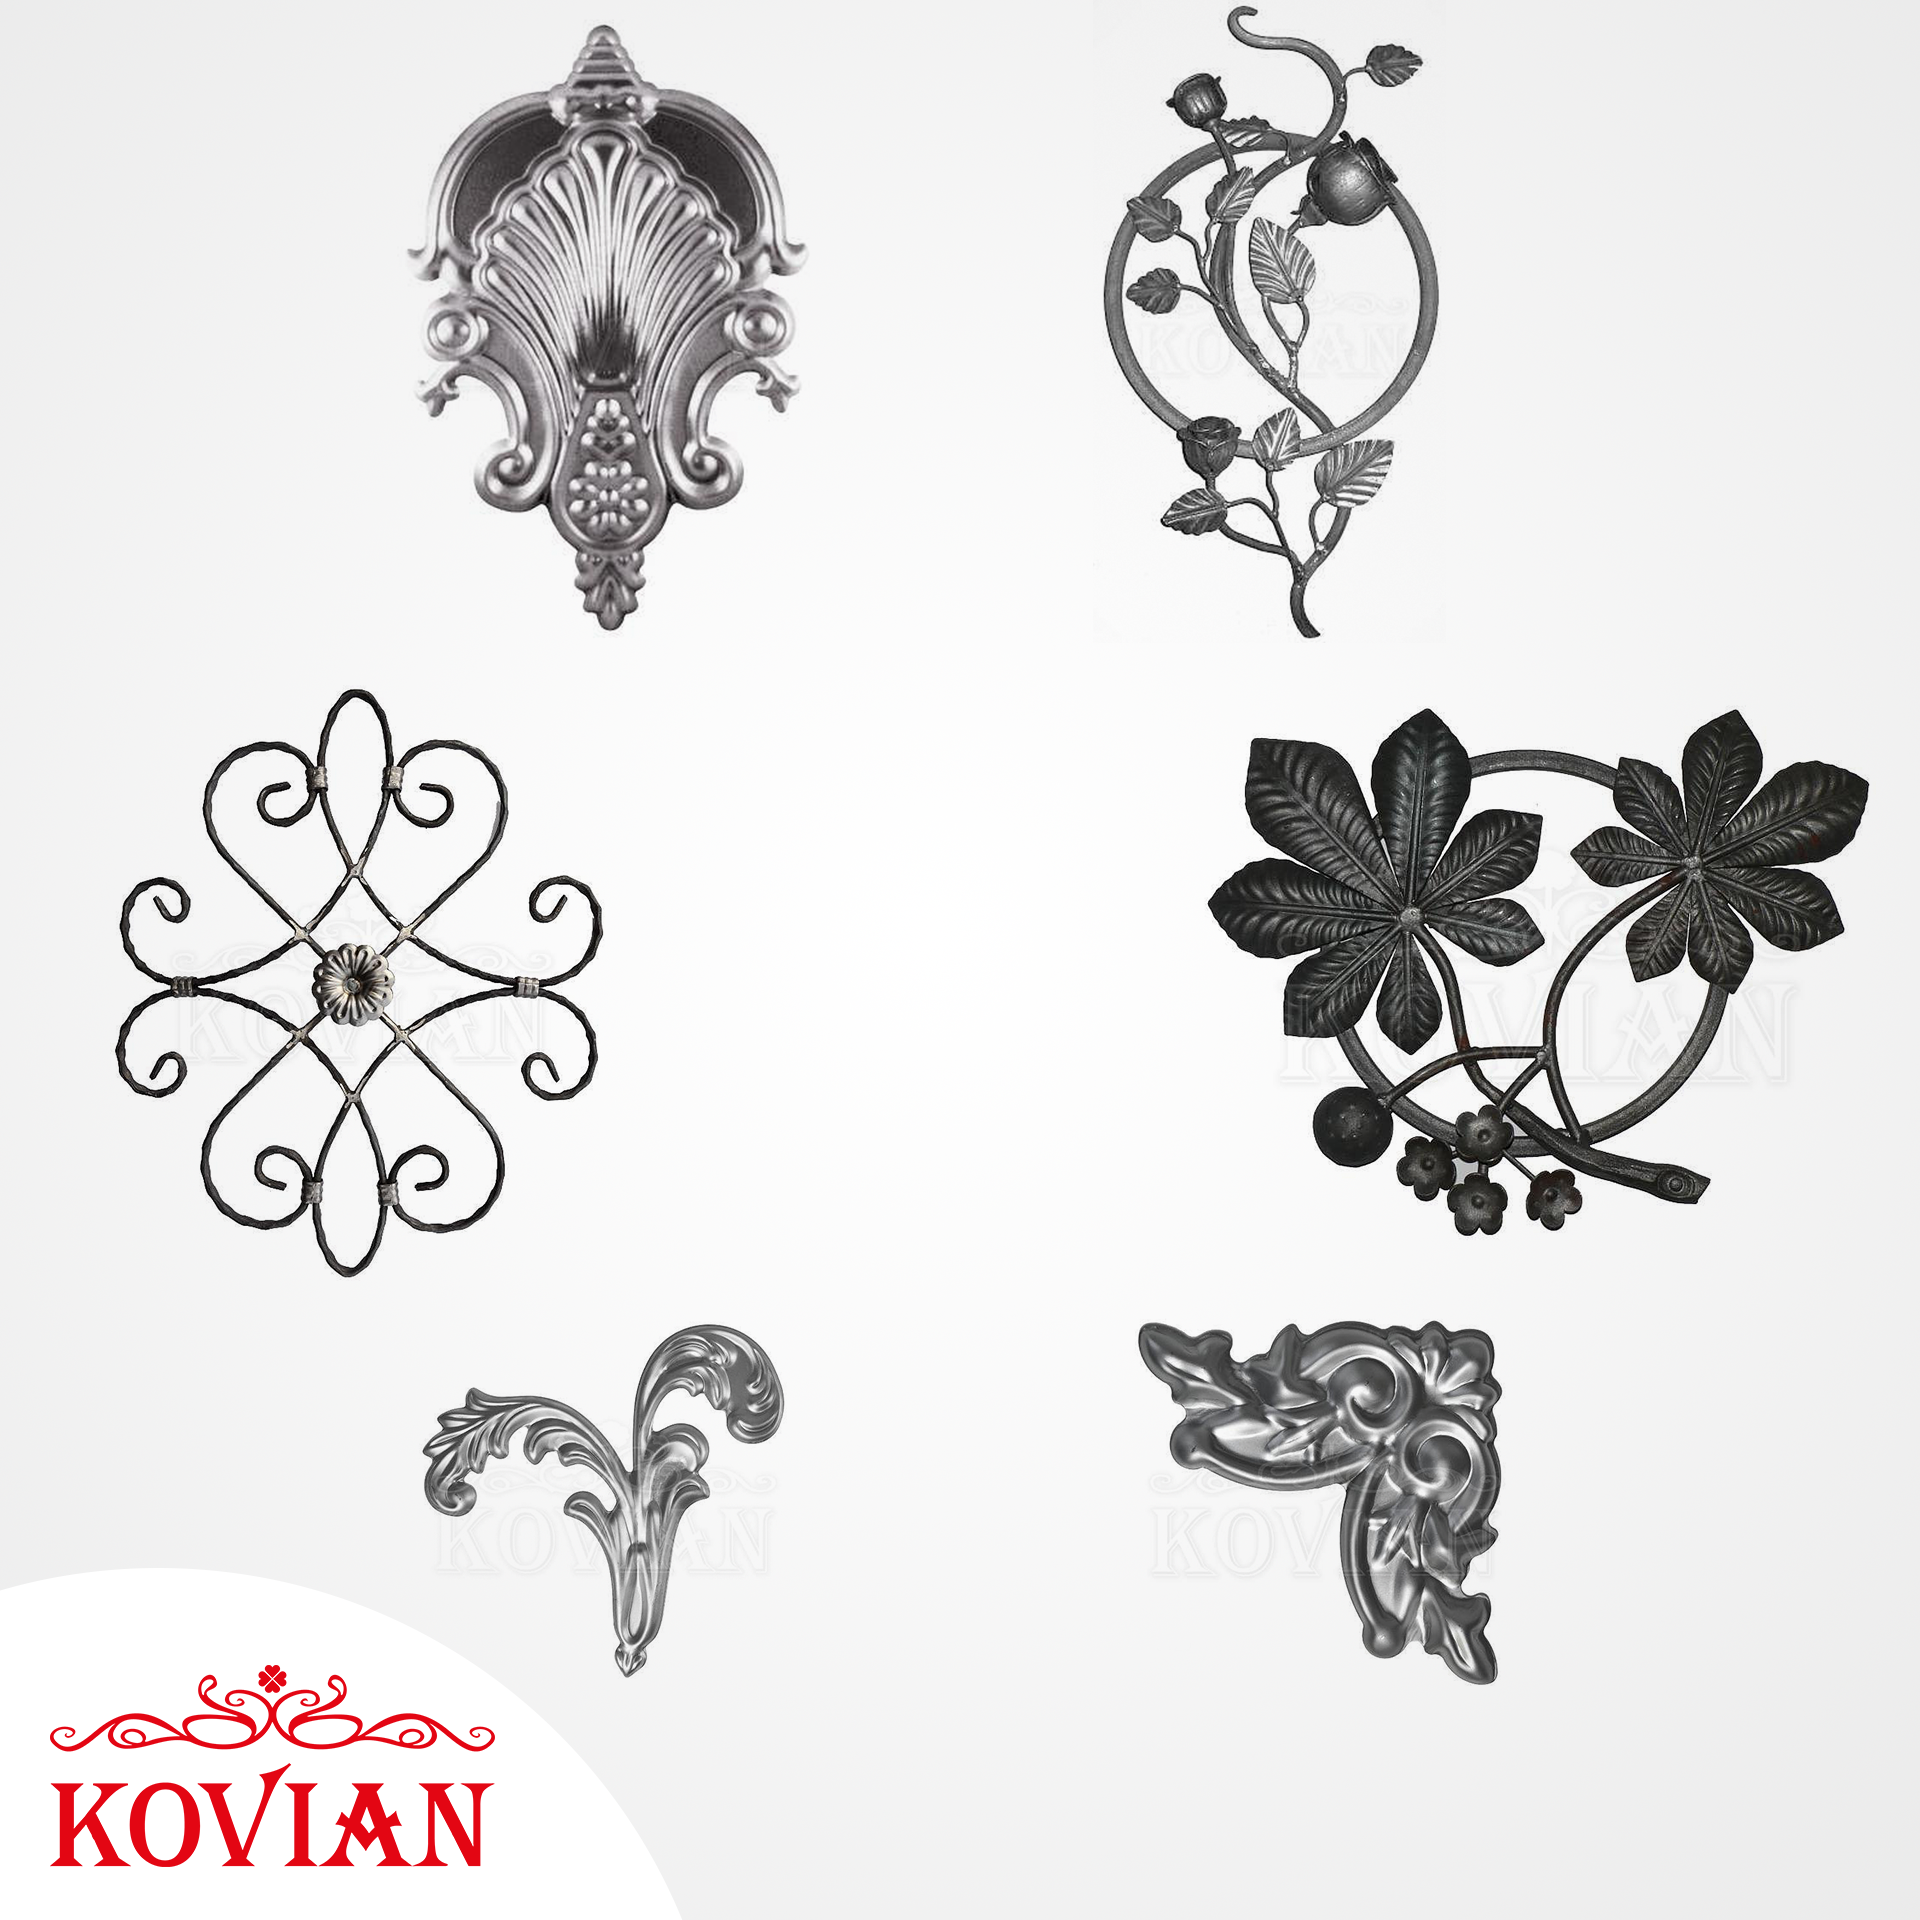 Stainless steel ornaments -  Kovian Ornaments Gardening Home Beautifulhome Garden Steel Stainless